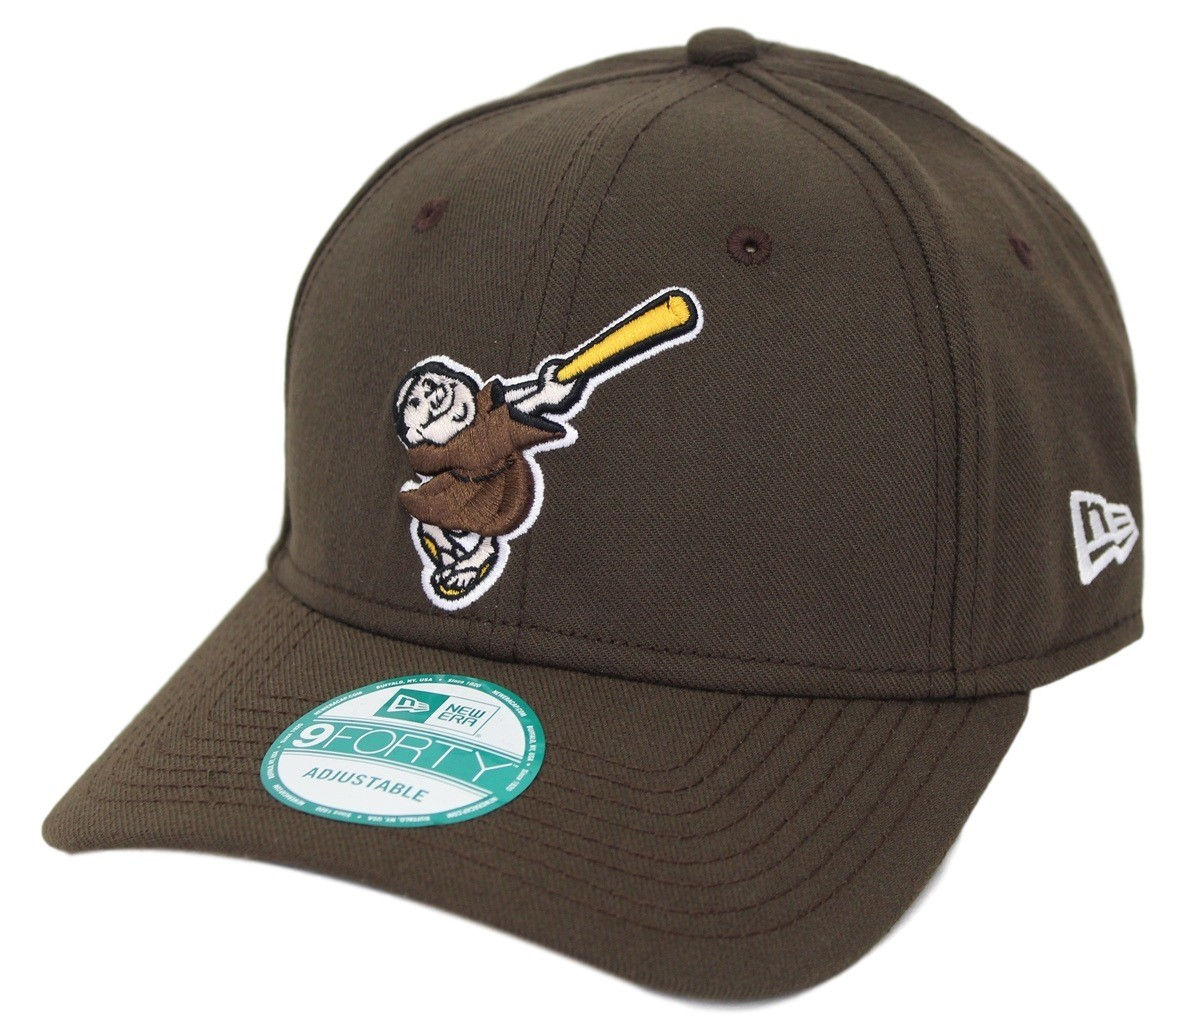 8ce0f49ee60a3 ... switzerland san diego padres new era mlb 9forty cooperstown classic  custom adjustable hat f30cf e31fa